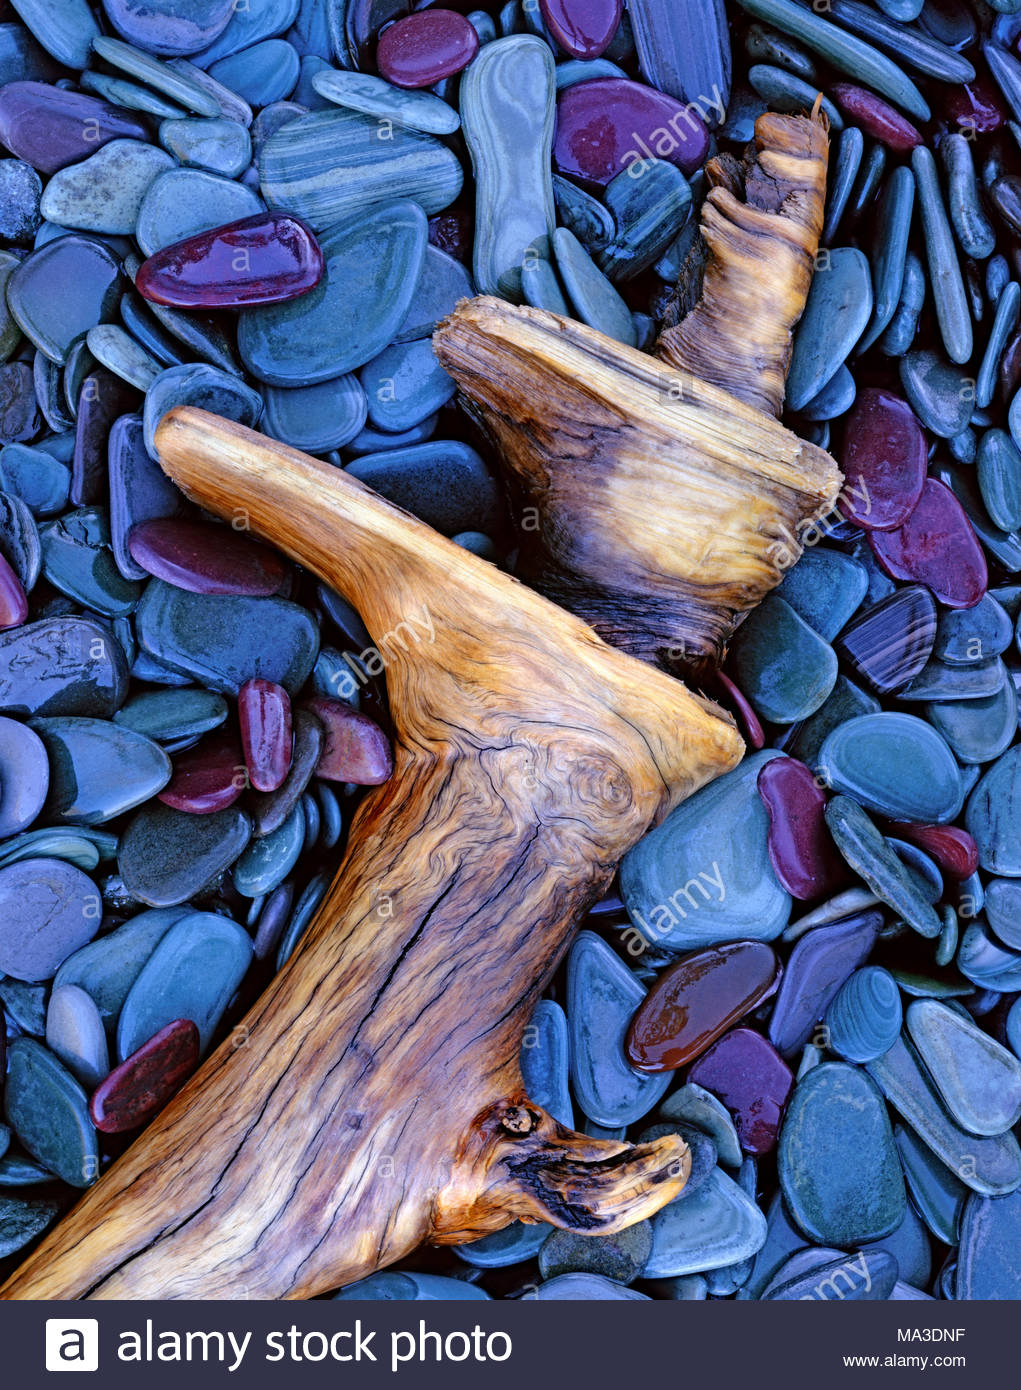 Stones and Driftwood after rain on the Shore of St. Mary Lake, Glacier National Park, Montana - Stock Image